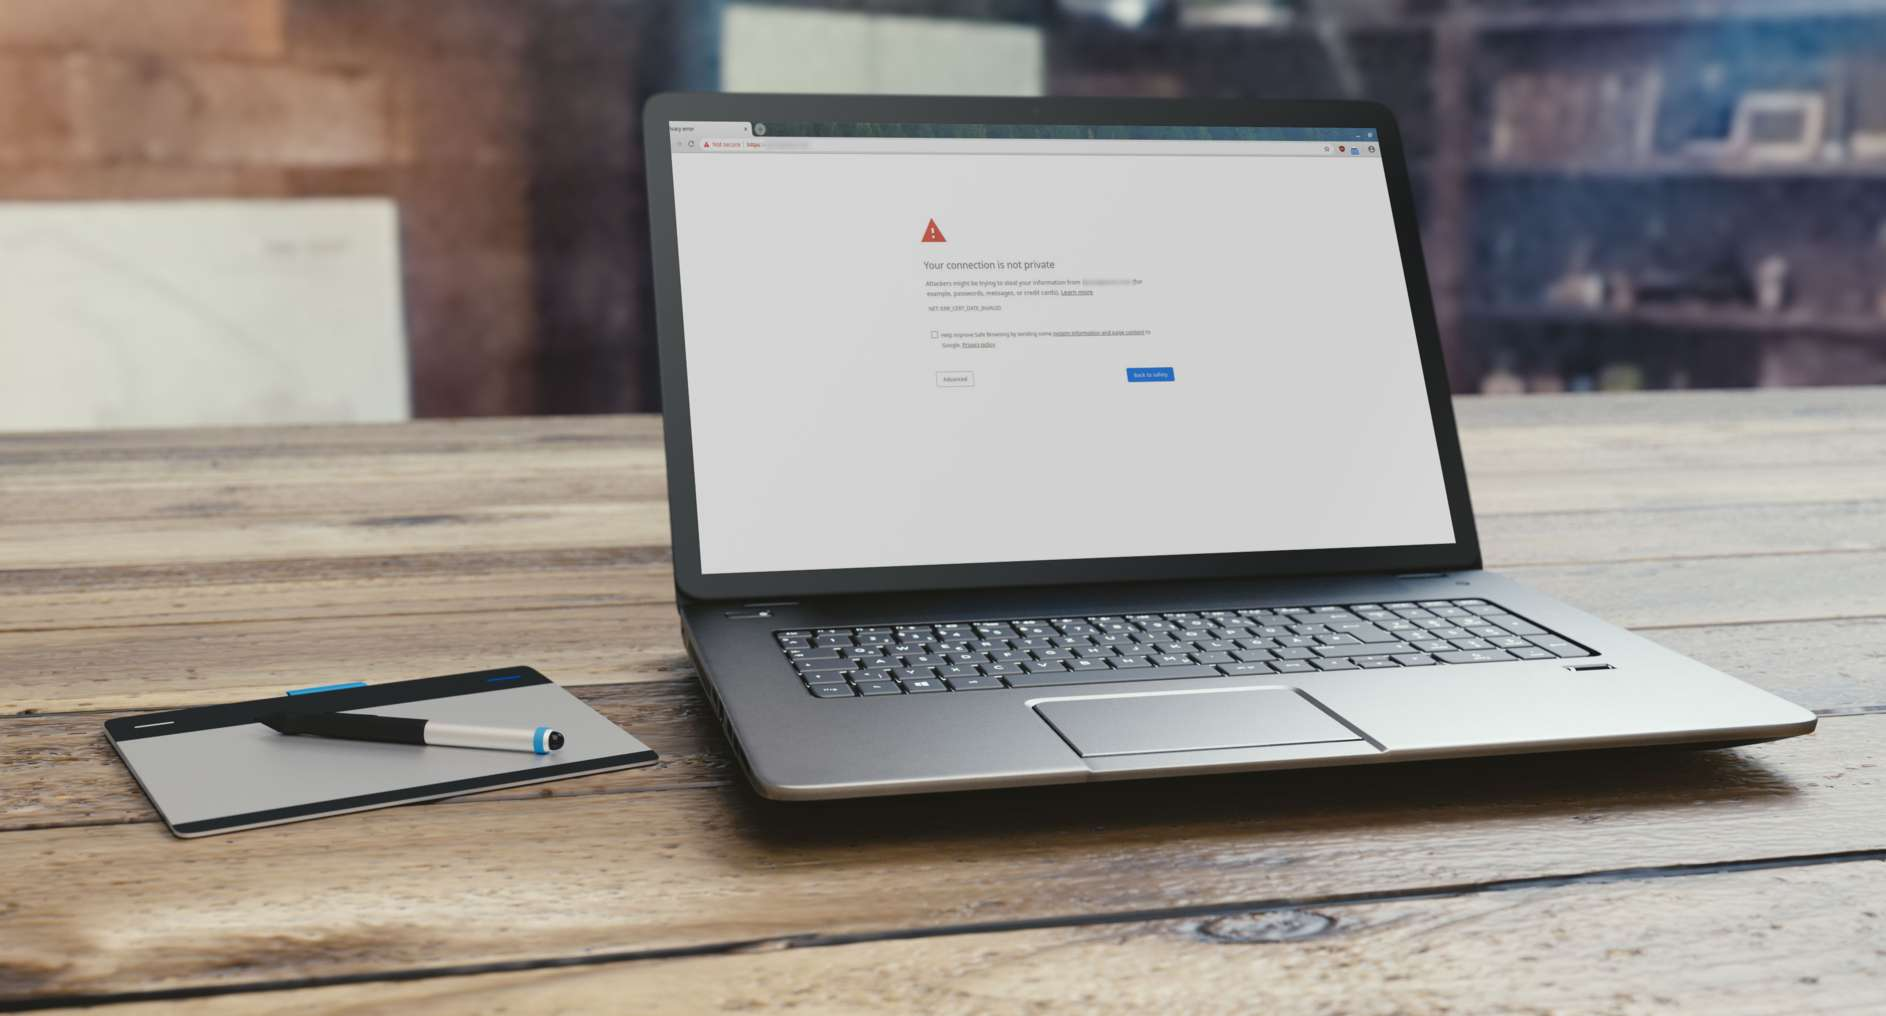 PC laptop on wooden table with Chrome privacy error onscreen